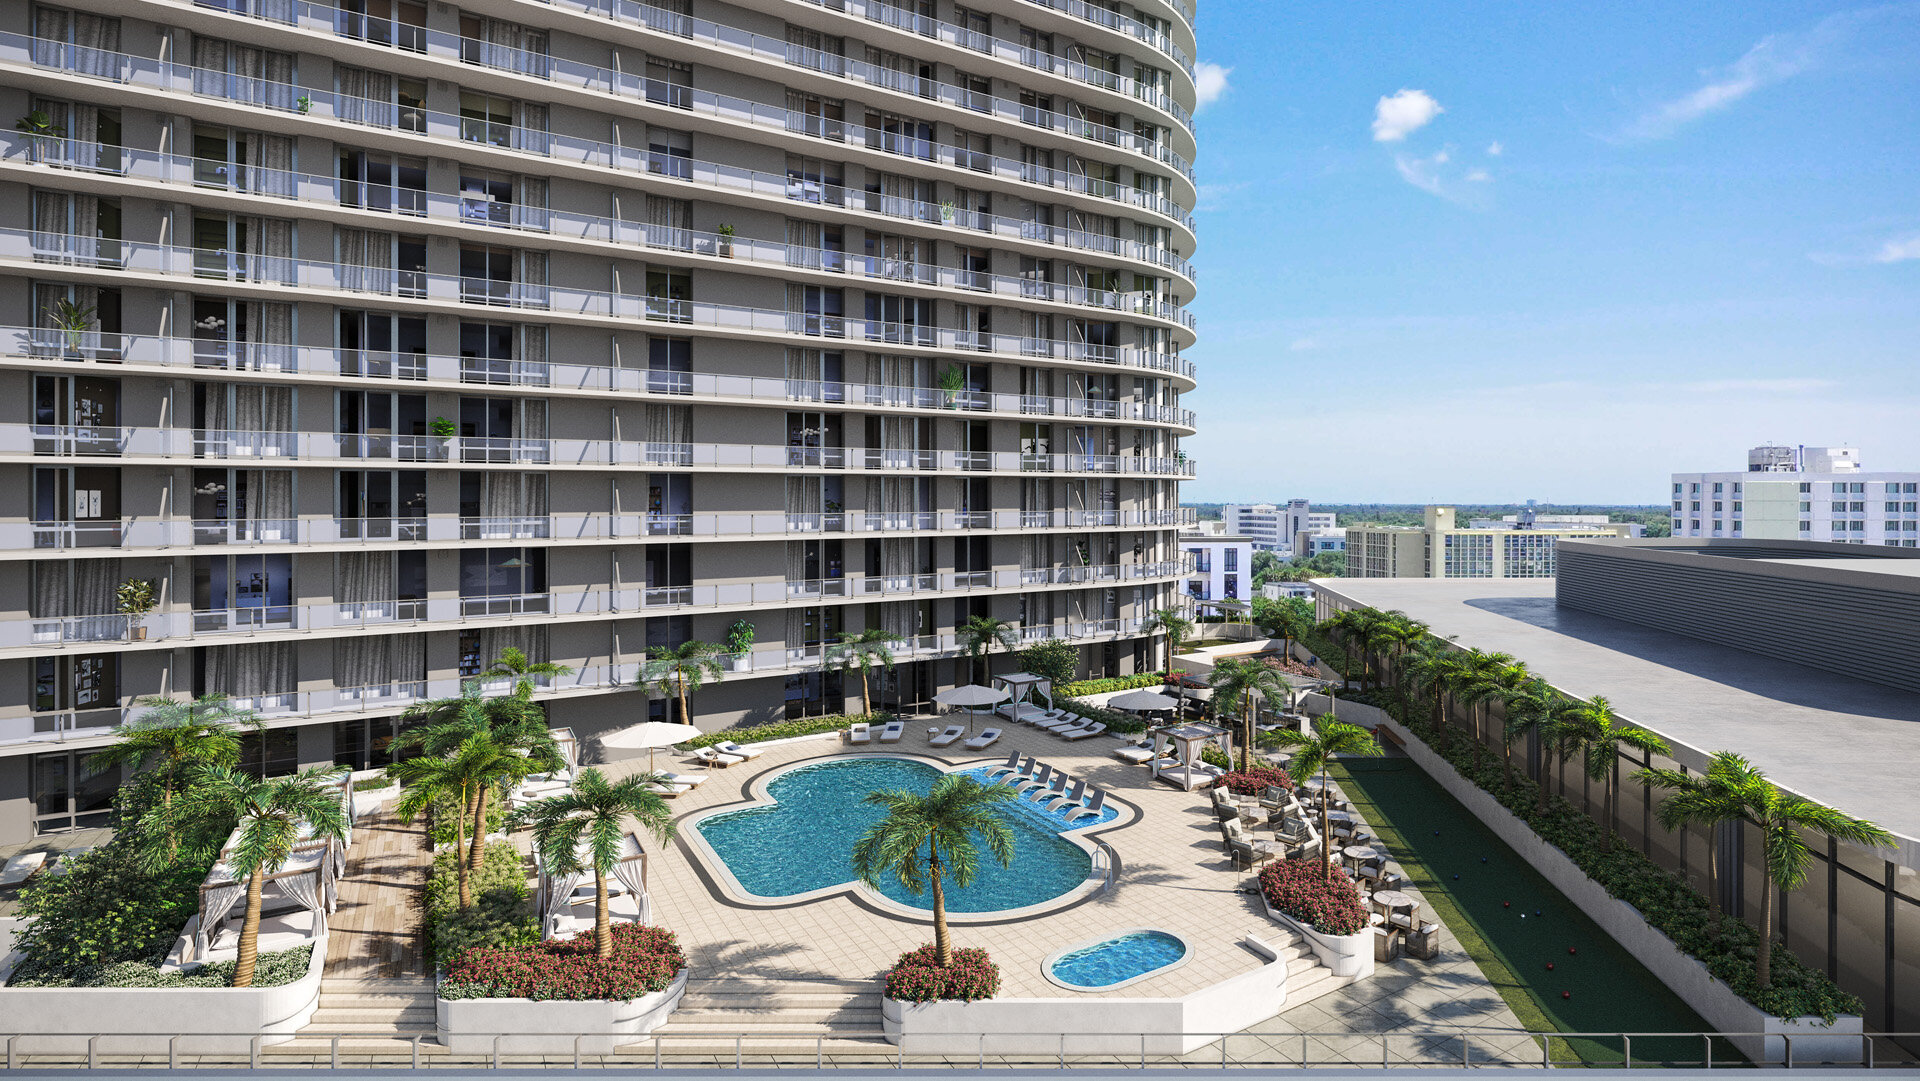 Rendering of swimming pool at 400 Central condos in St. Petersburg, FL